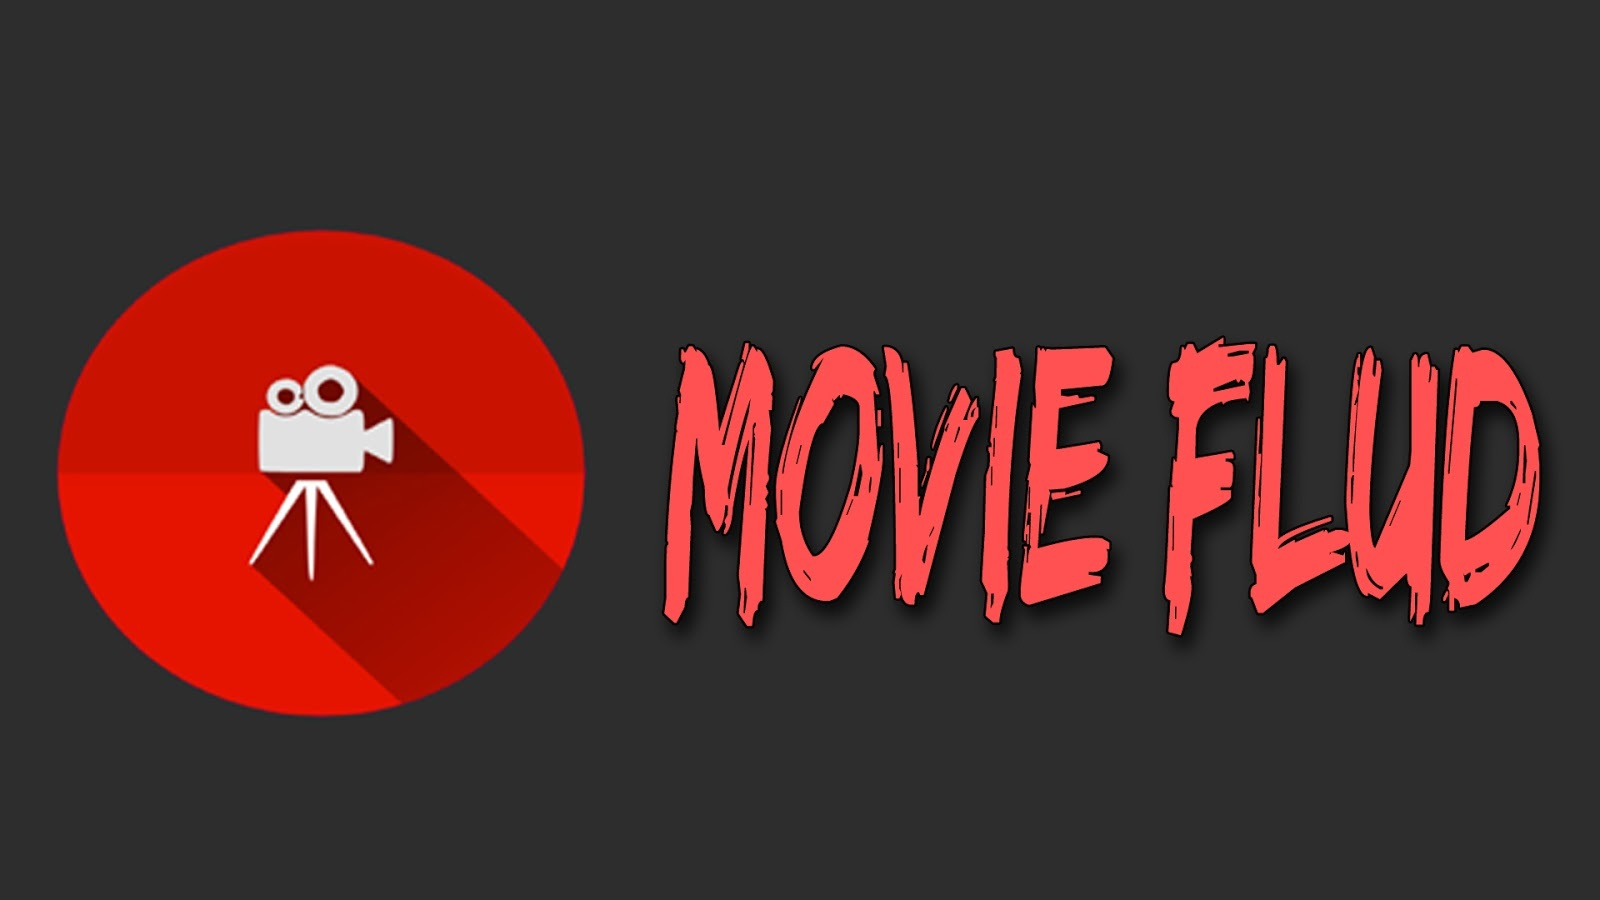 Movieflud Apk | Download & Install Movieflud App for Android!